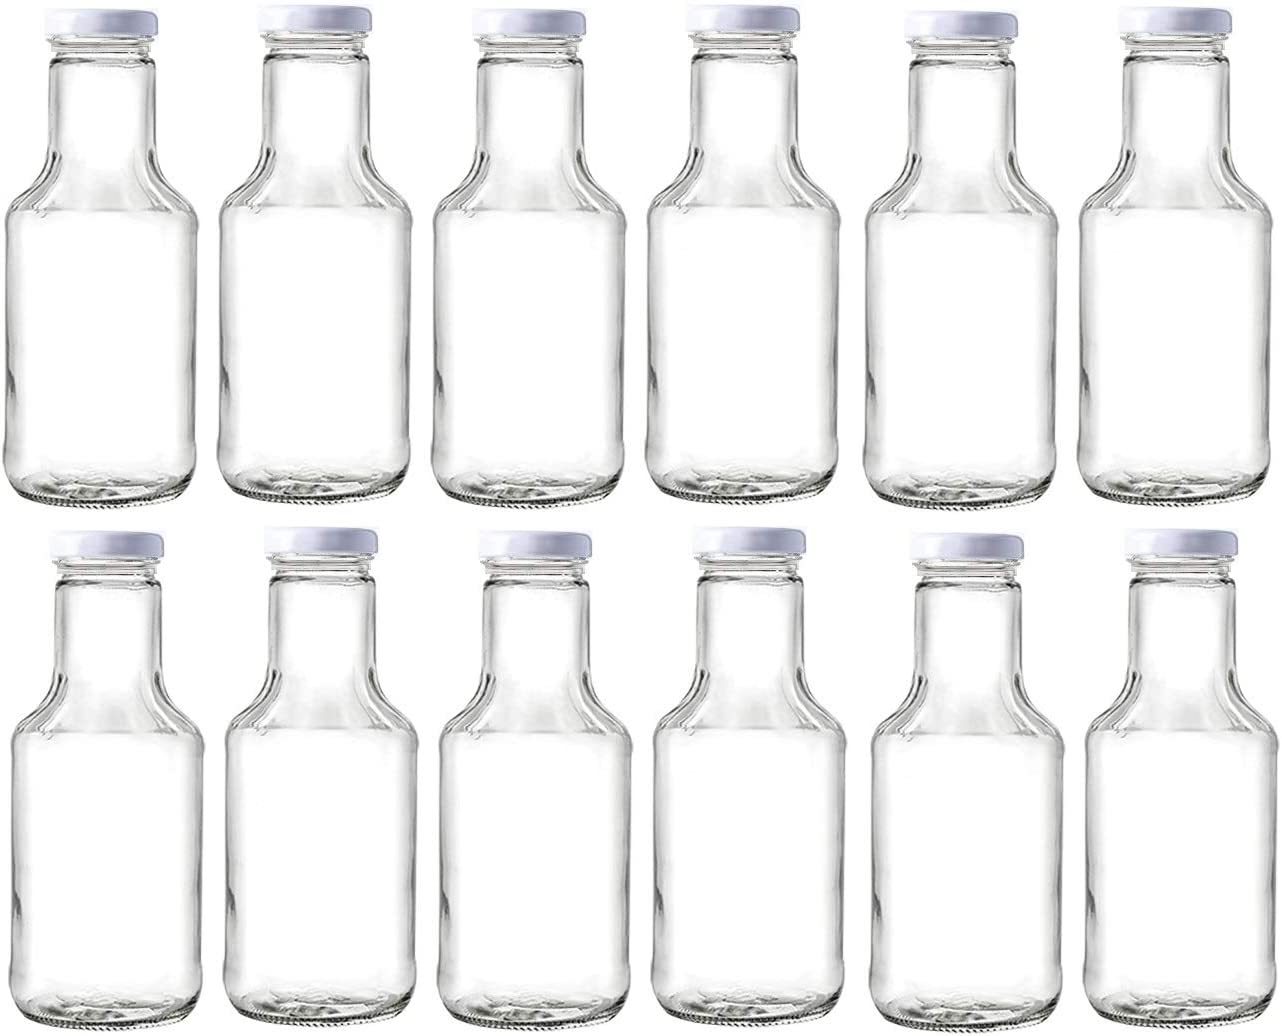 Nakpunar 14 oz Wide Mouth Empty Glass Bottles with Lids for Oil, BBQ Sauces, Milk, Water, Beverages (12, White)